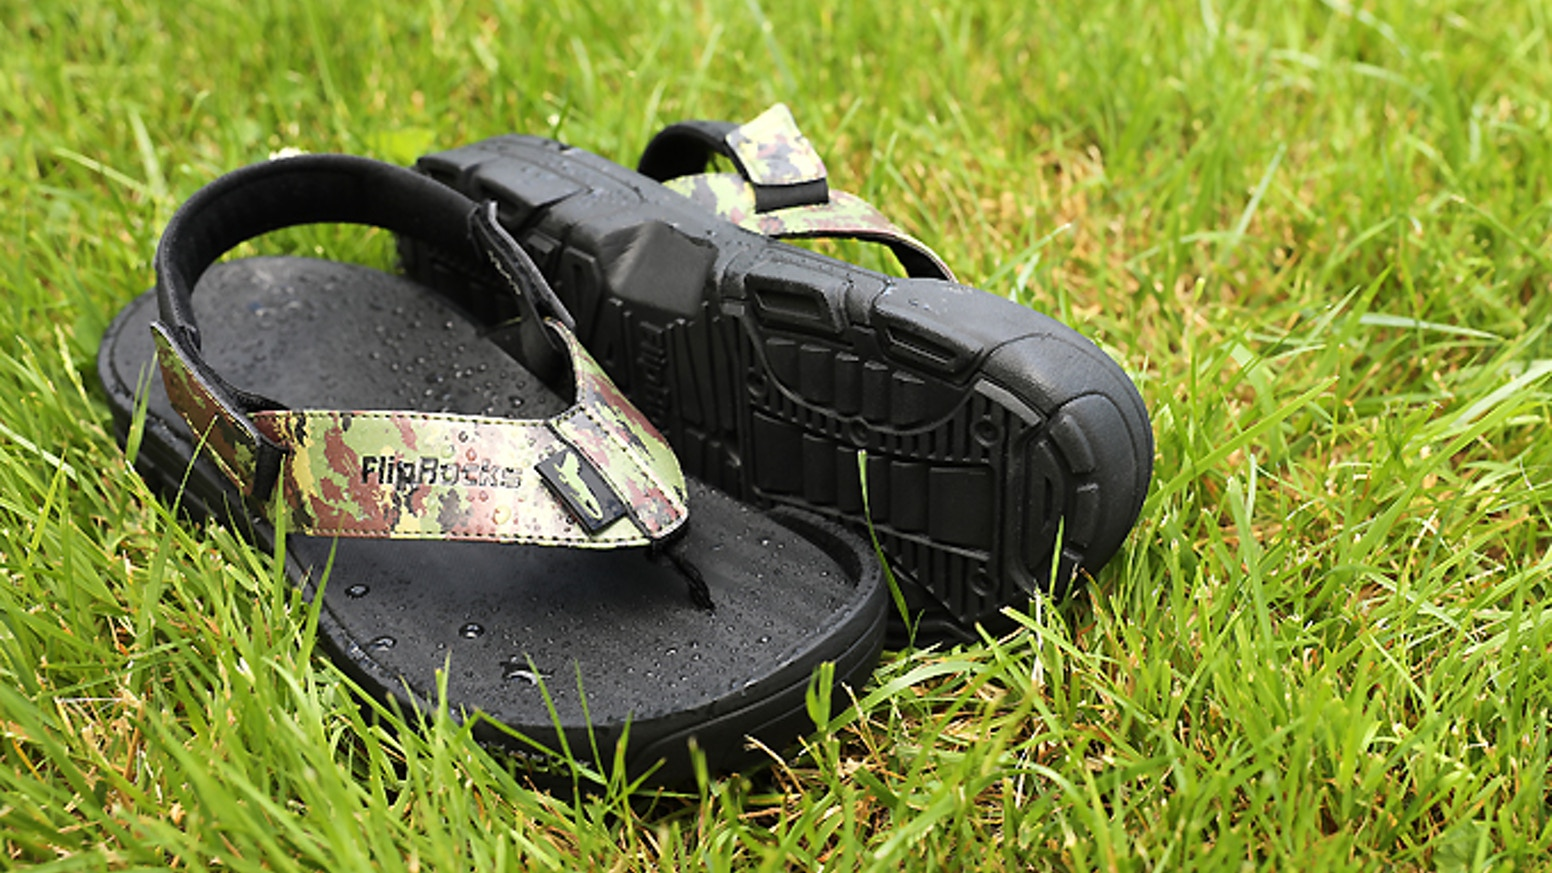 af37ab05c59d FlipRocks - Extreme Flip Flops with Interchangeable Soles by Anthony ...